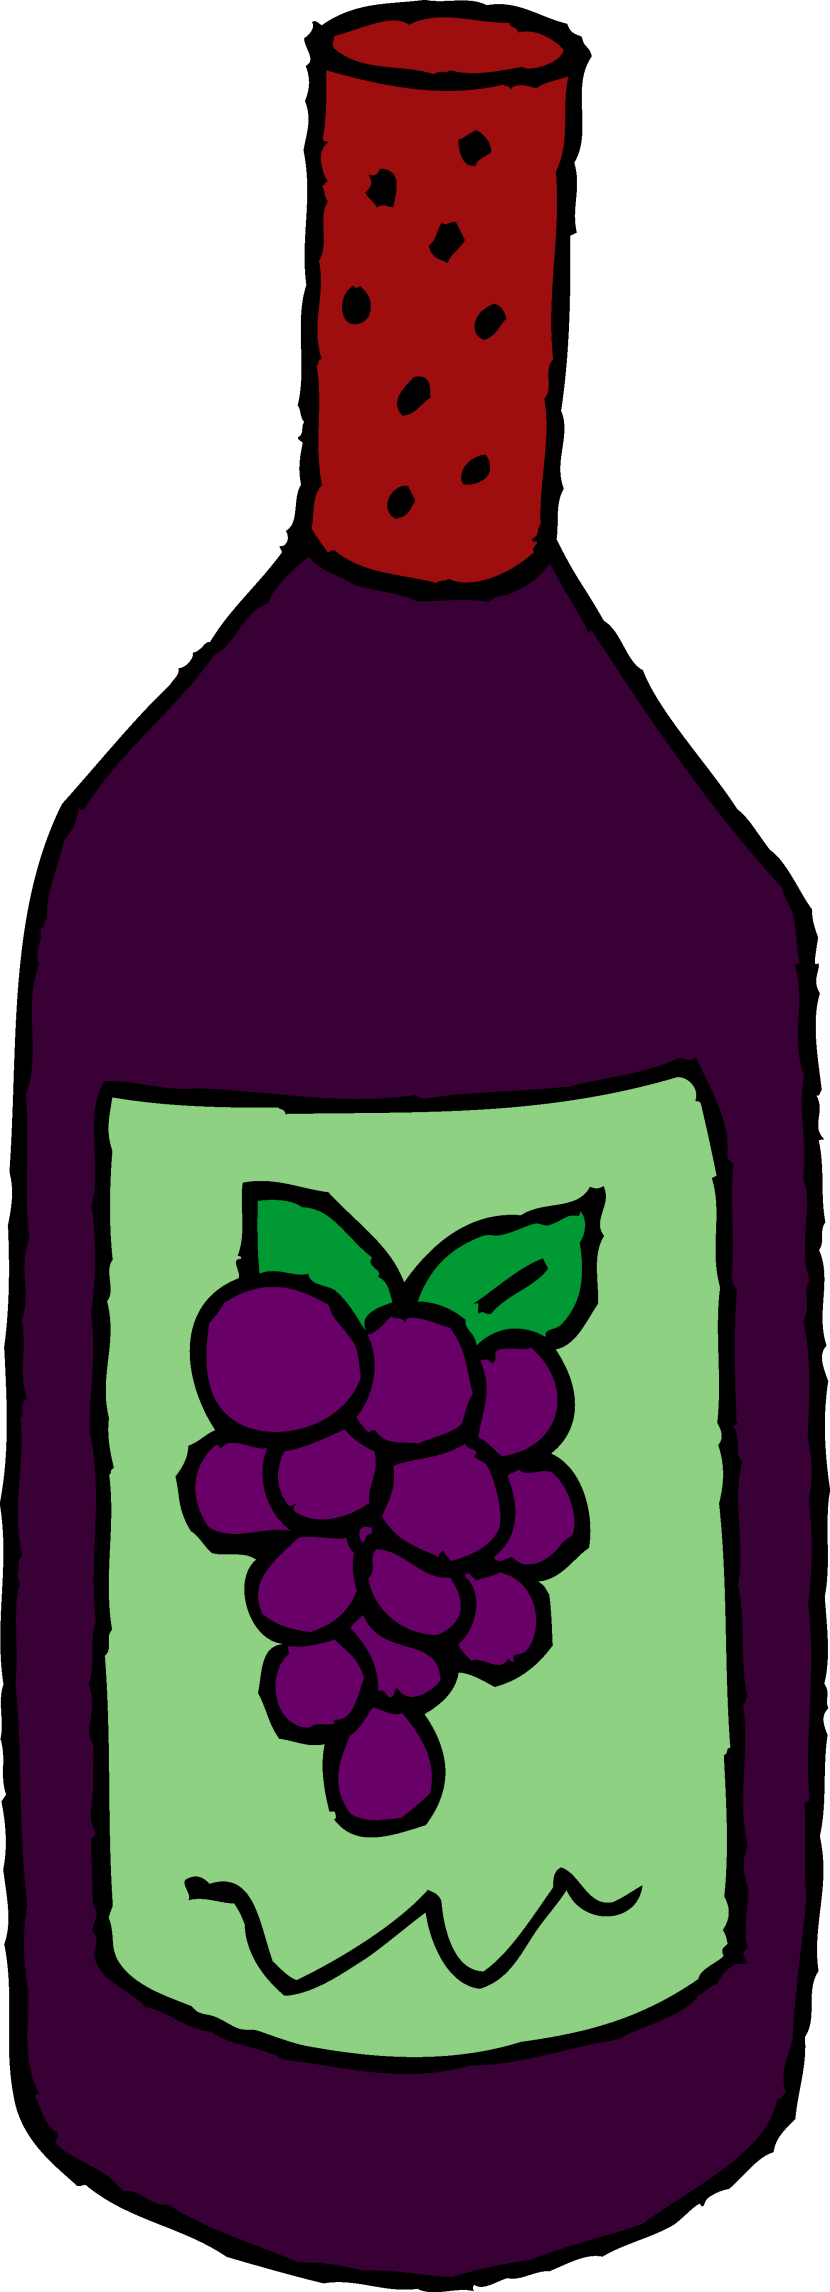 Wine clipart #16, Download drawings